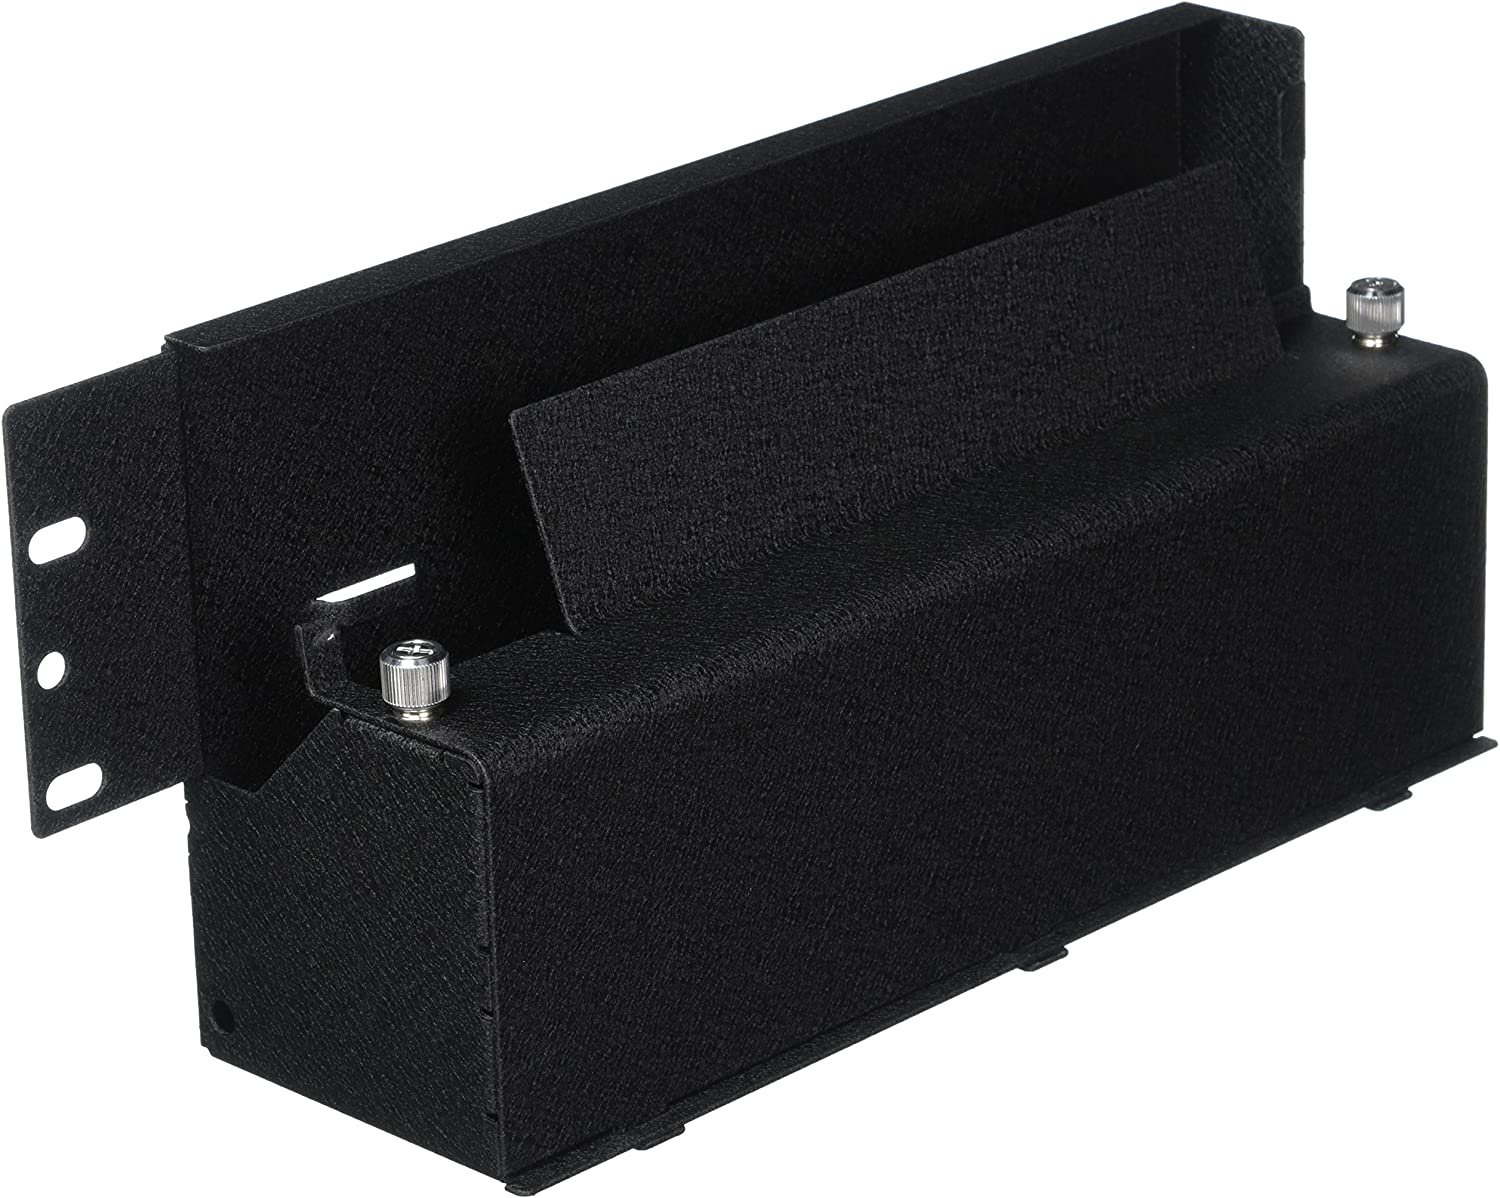 Brother In-Vehicle Mount Used With Roll Max 76% OFF For Paper Pocketjet Cheap mail order sales 7